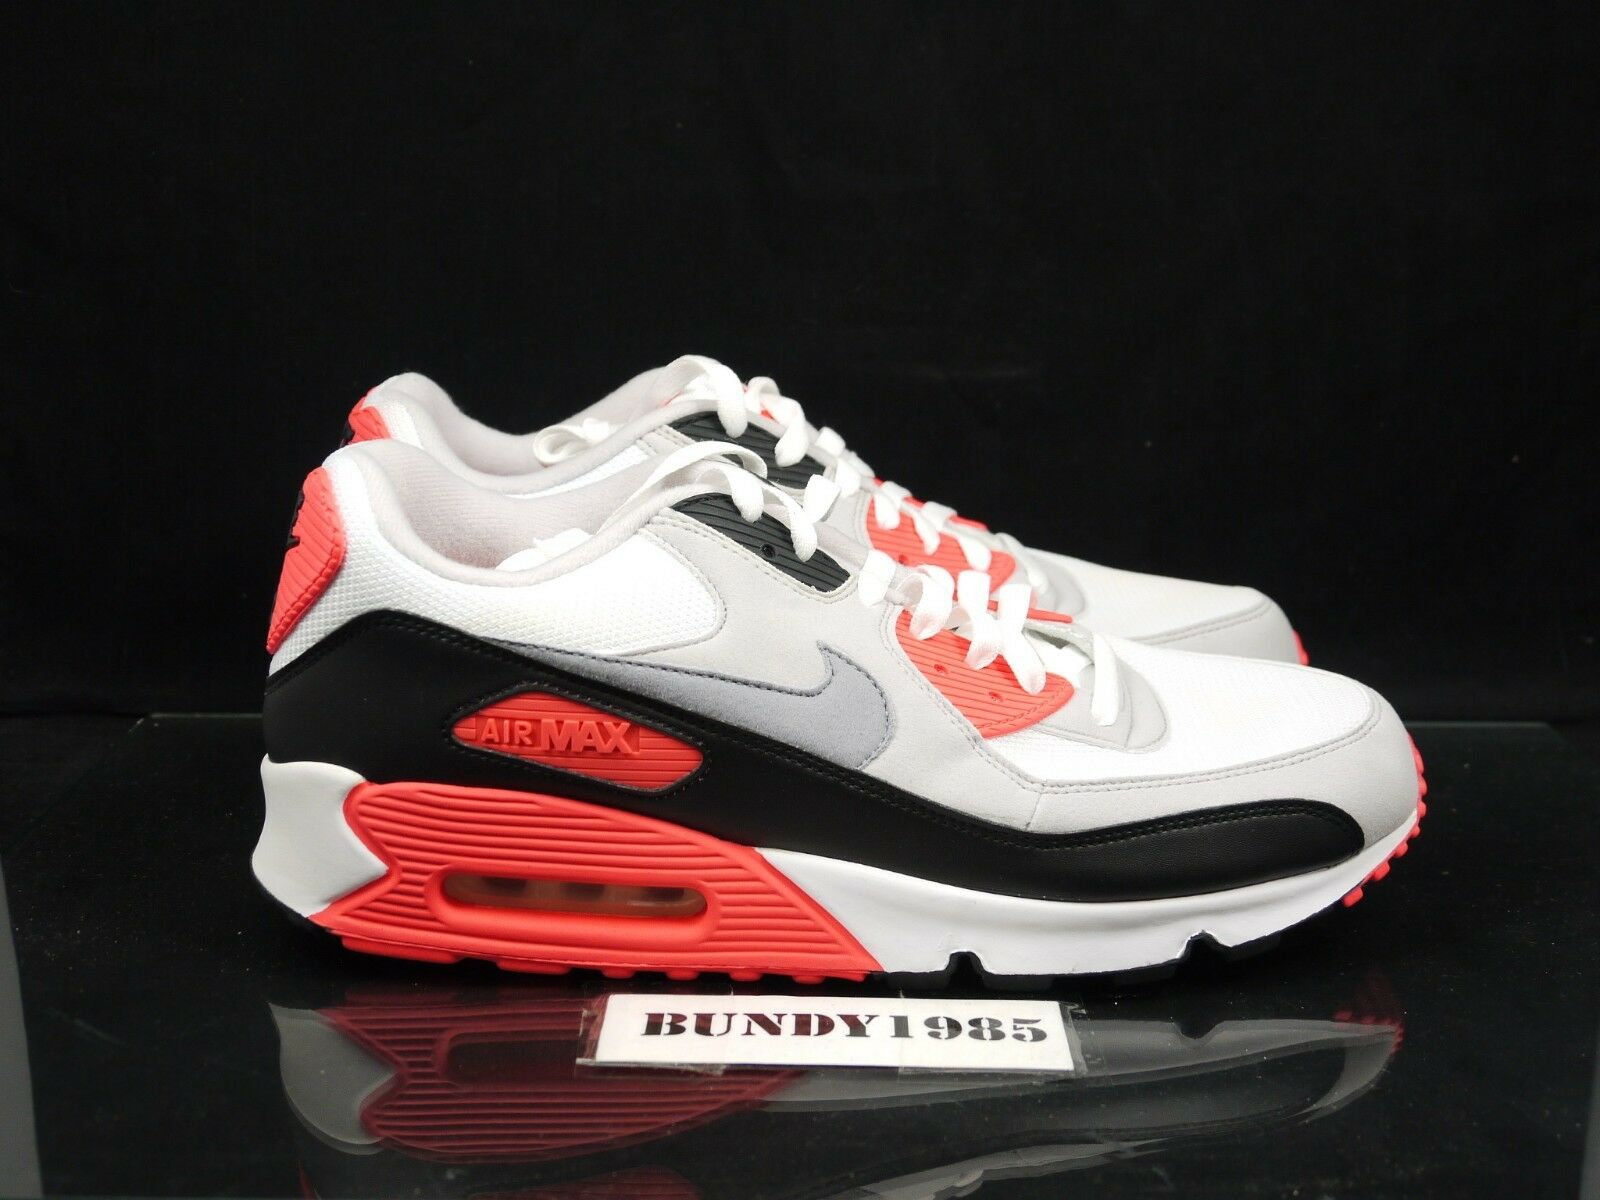 325018 107 Nike Air Max 90 2010 Infrared Men's SZ 10 hot lava volt supreme 4